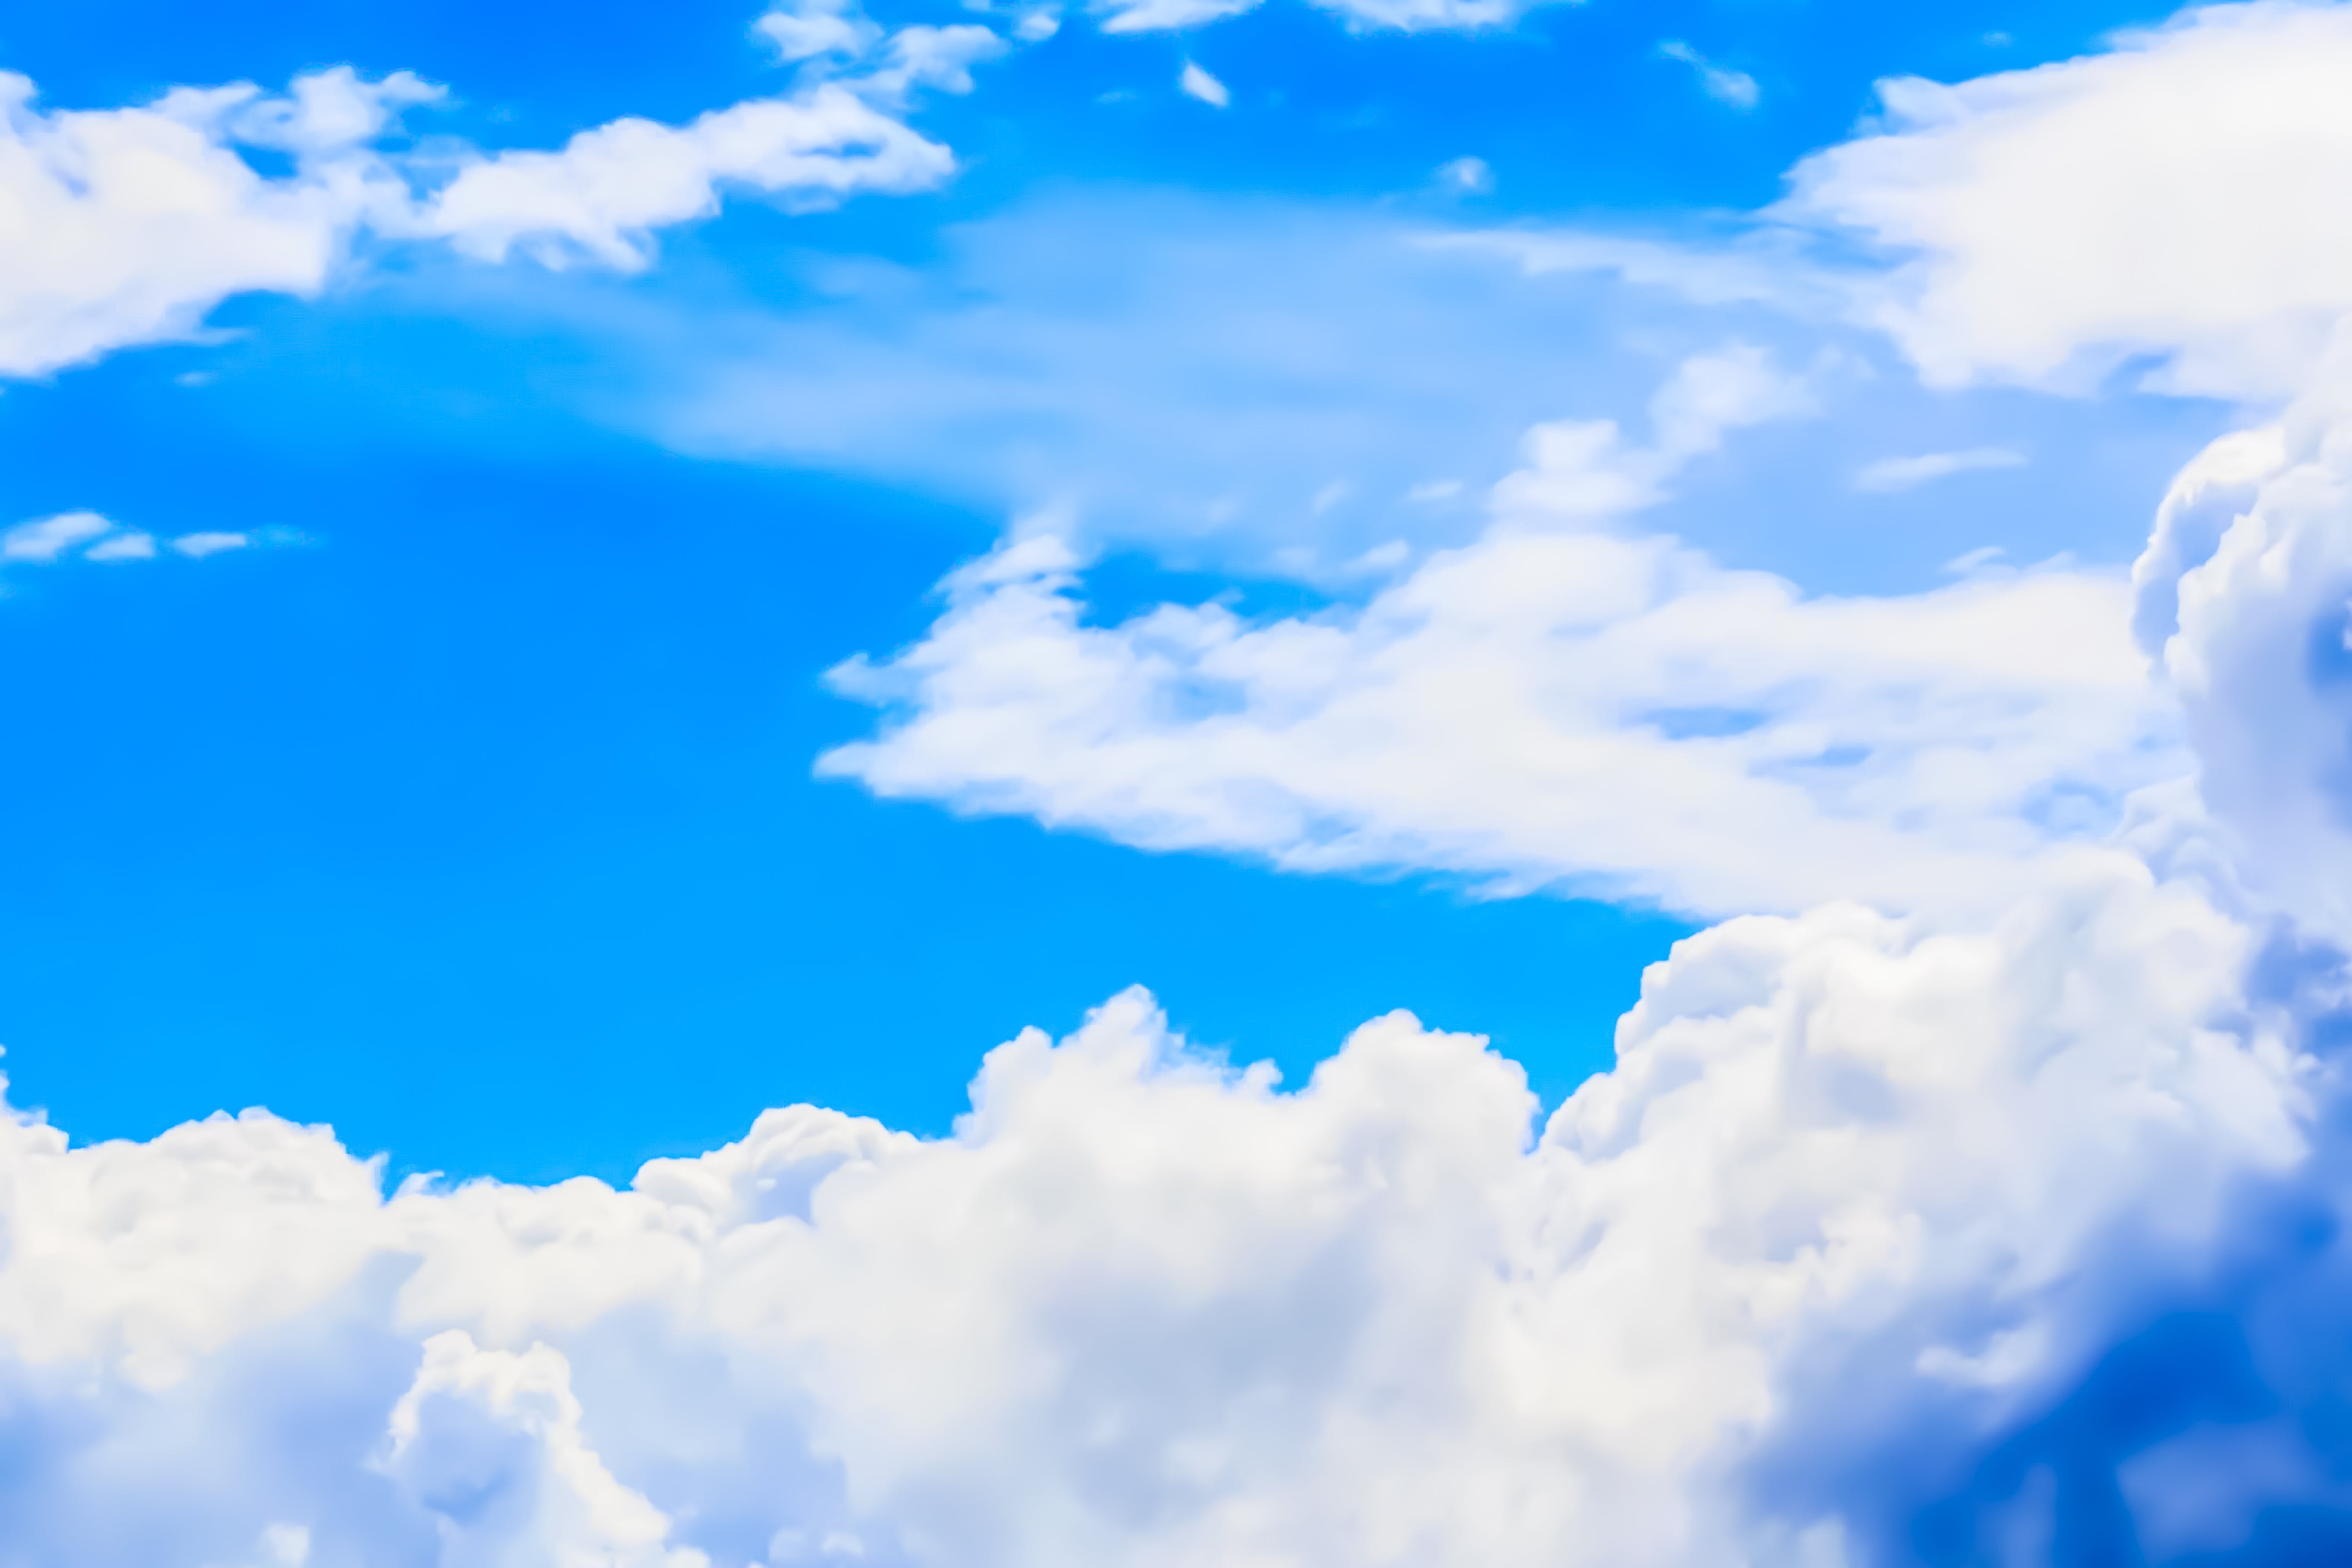 Free stock photo of blue sky, clear sky, clouds, darks clouds